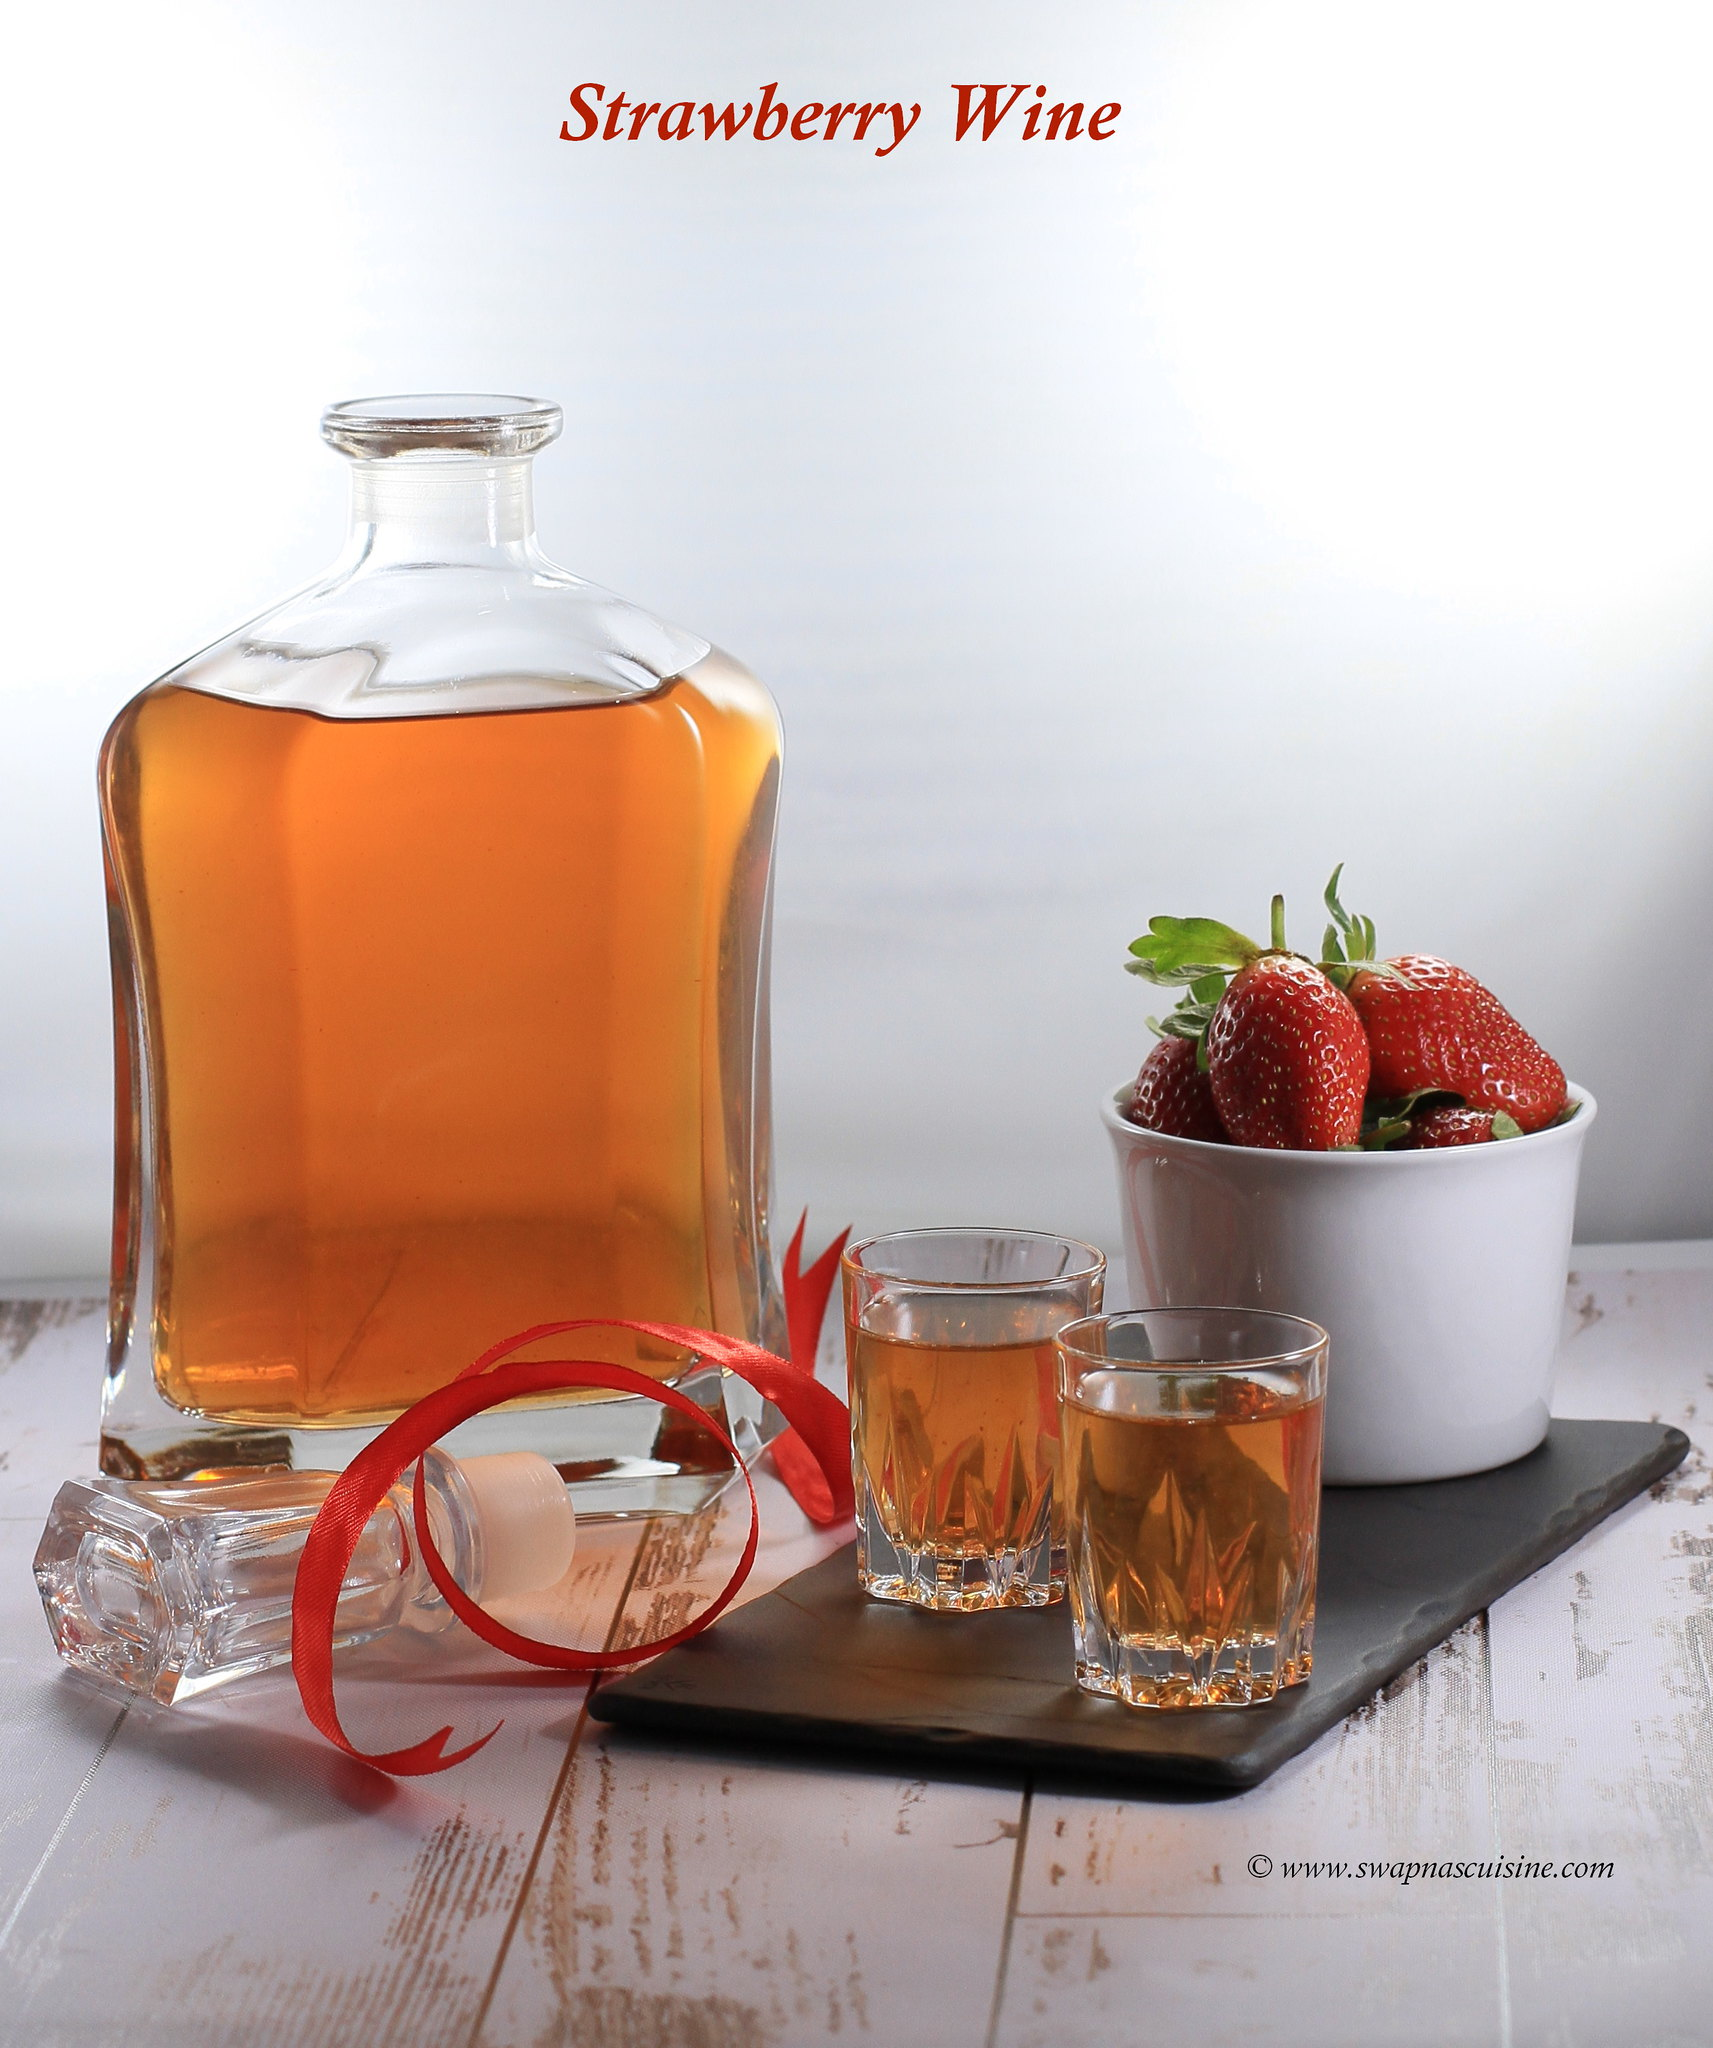 How to make Strawberry Wine